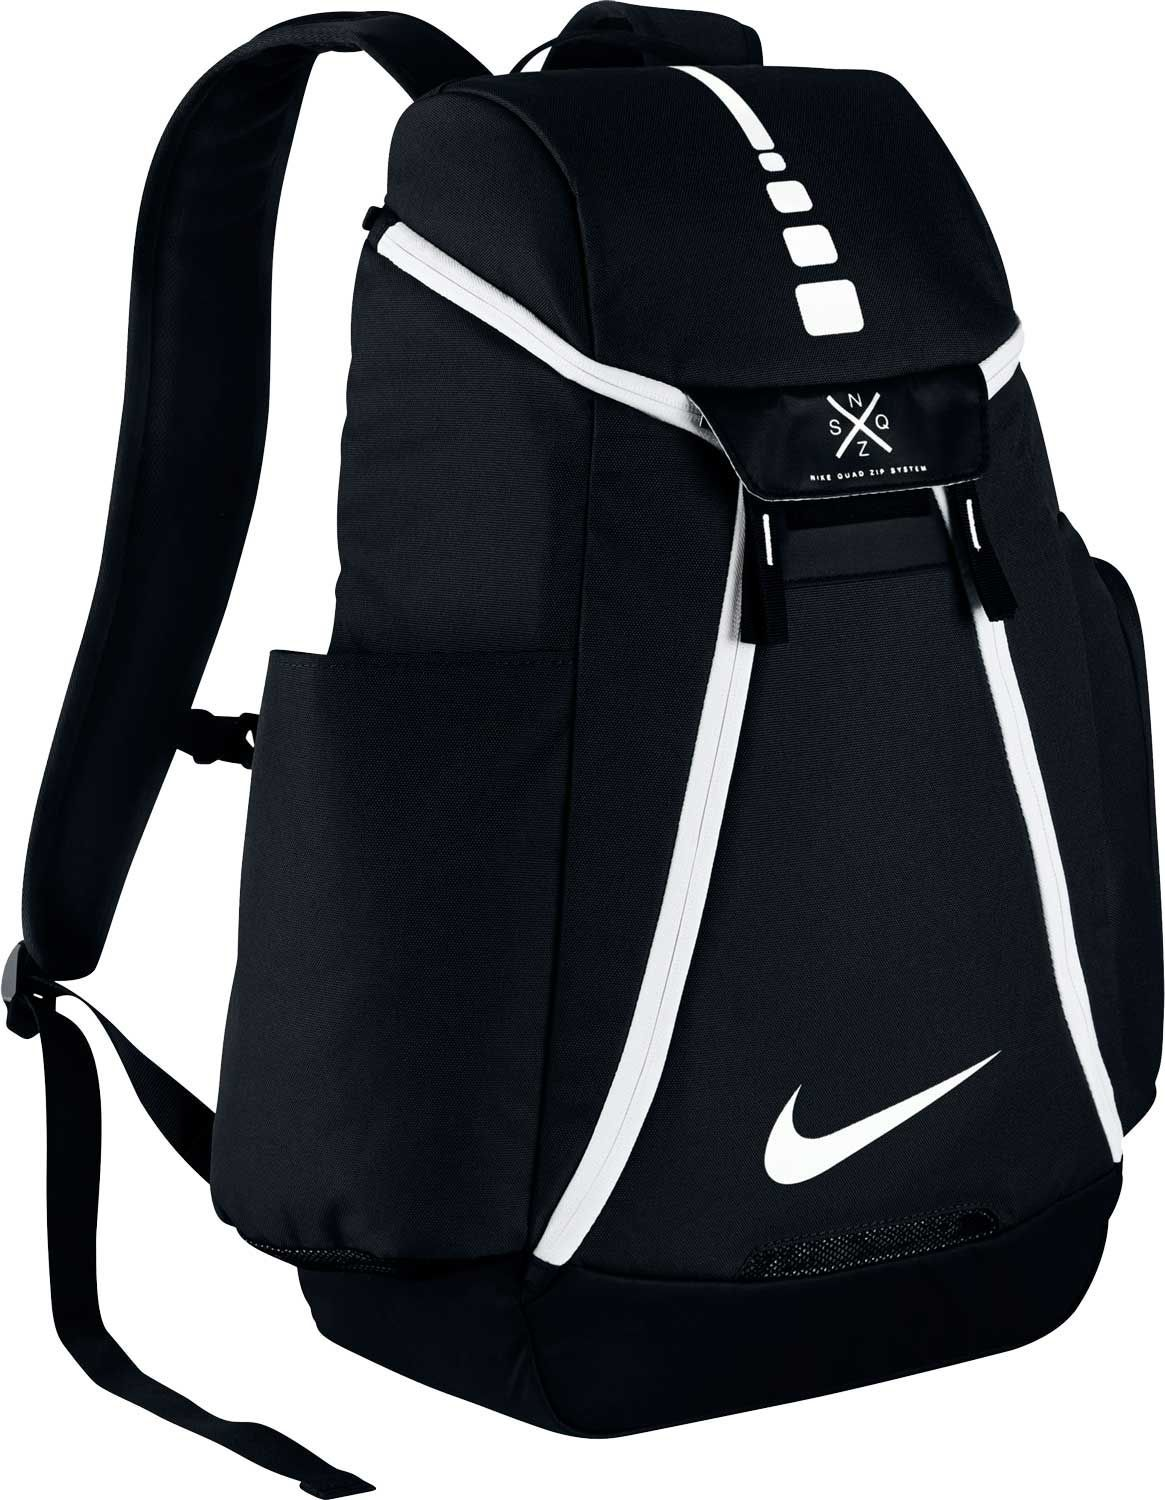 659b835b52 Nike Hoops Elite Max Air Team 2.0 Backpack, Black | Products | Nike ...